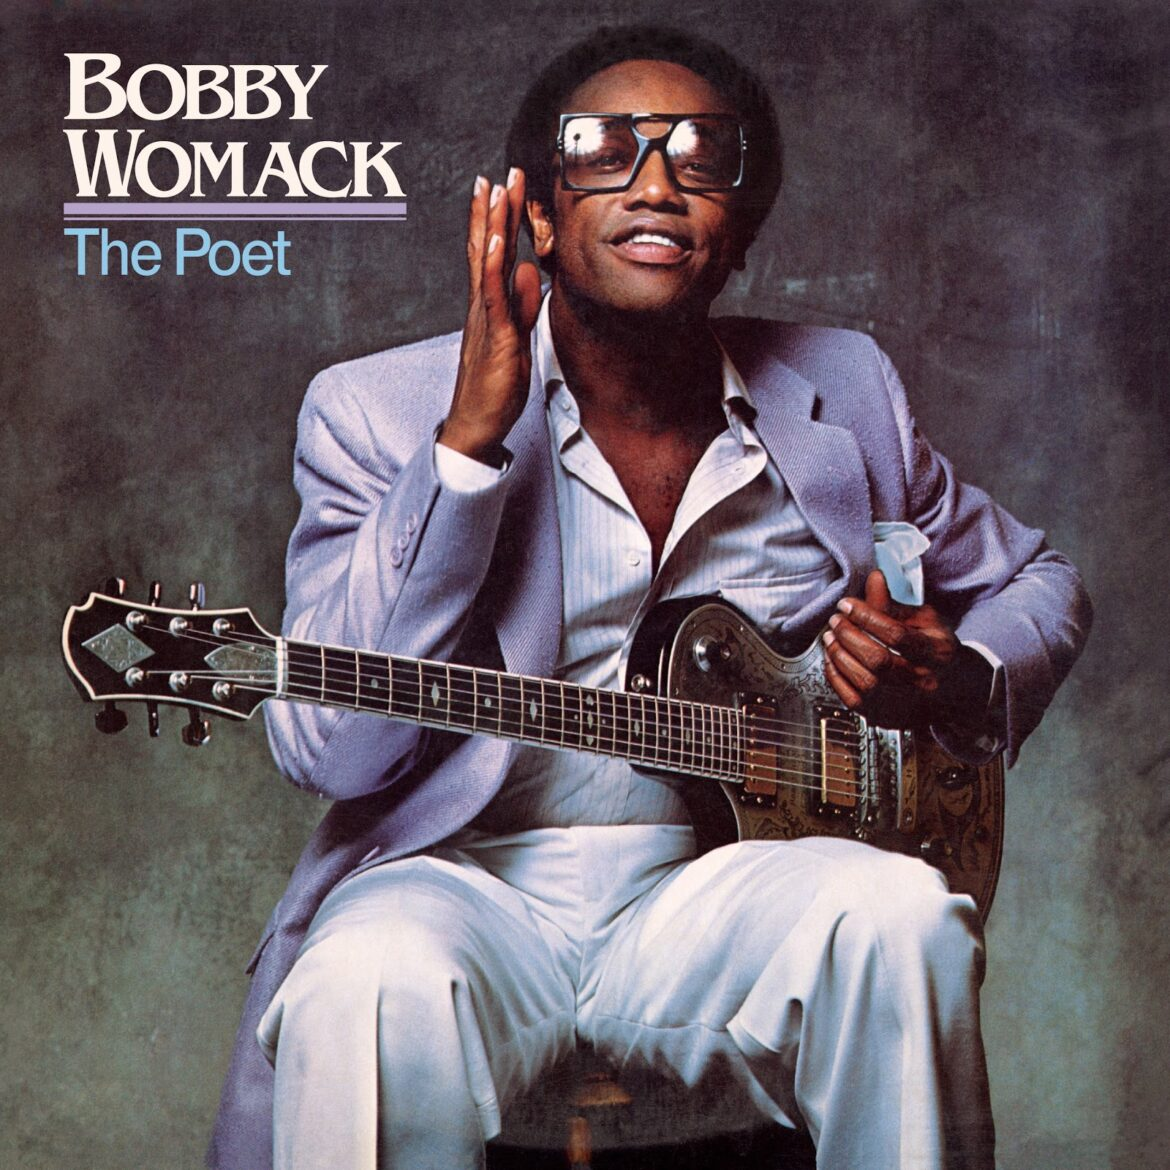 NEWS: Bobby Womack's The Poet and the Poet II to be re-issued